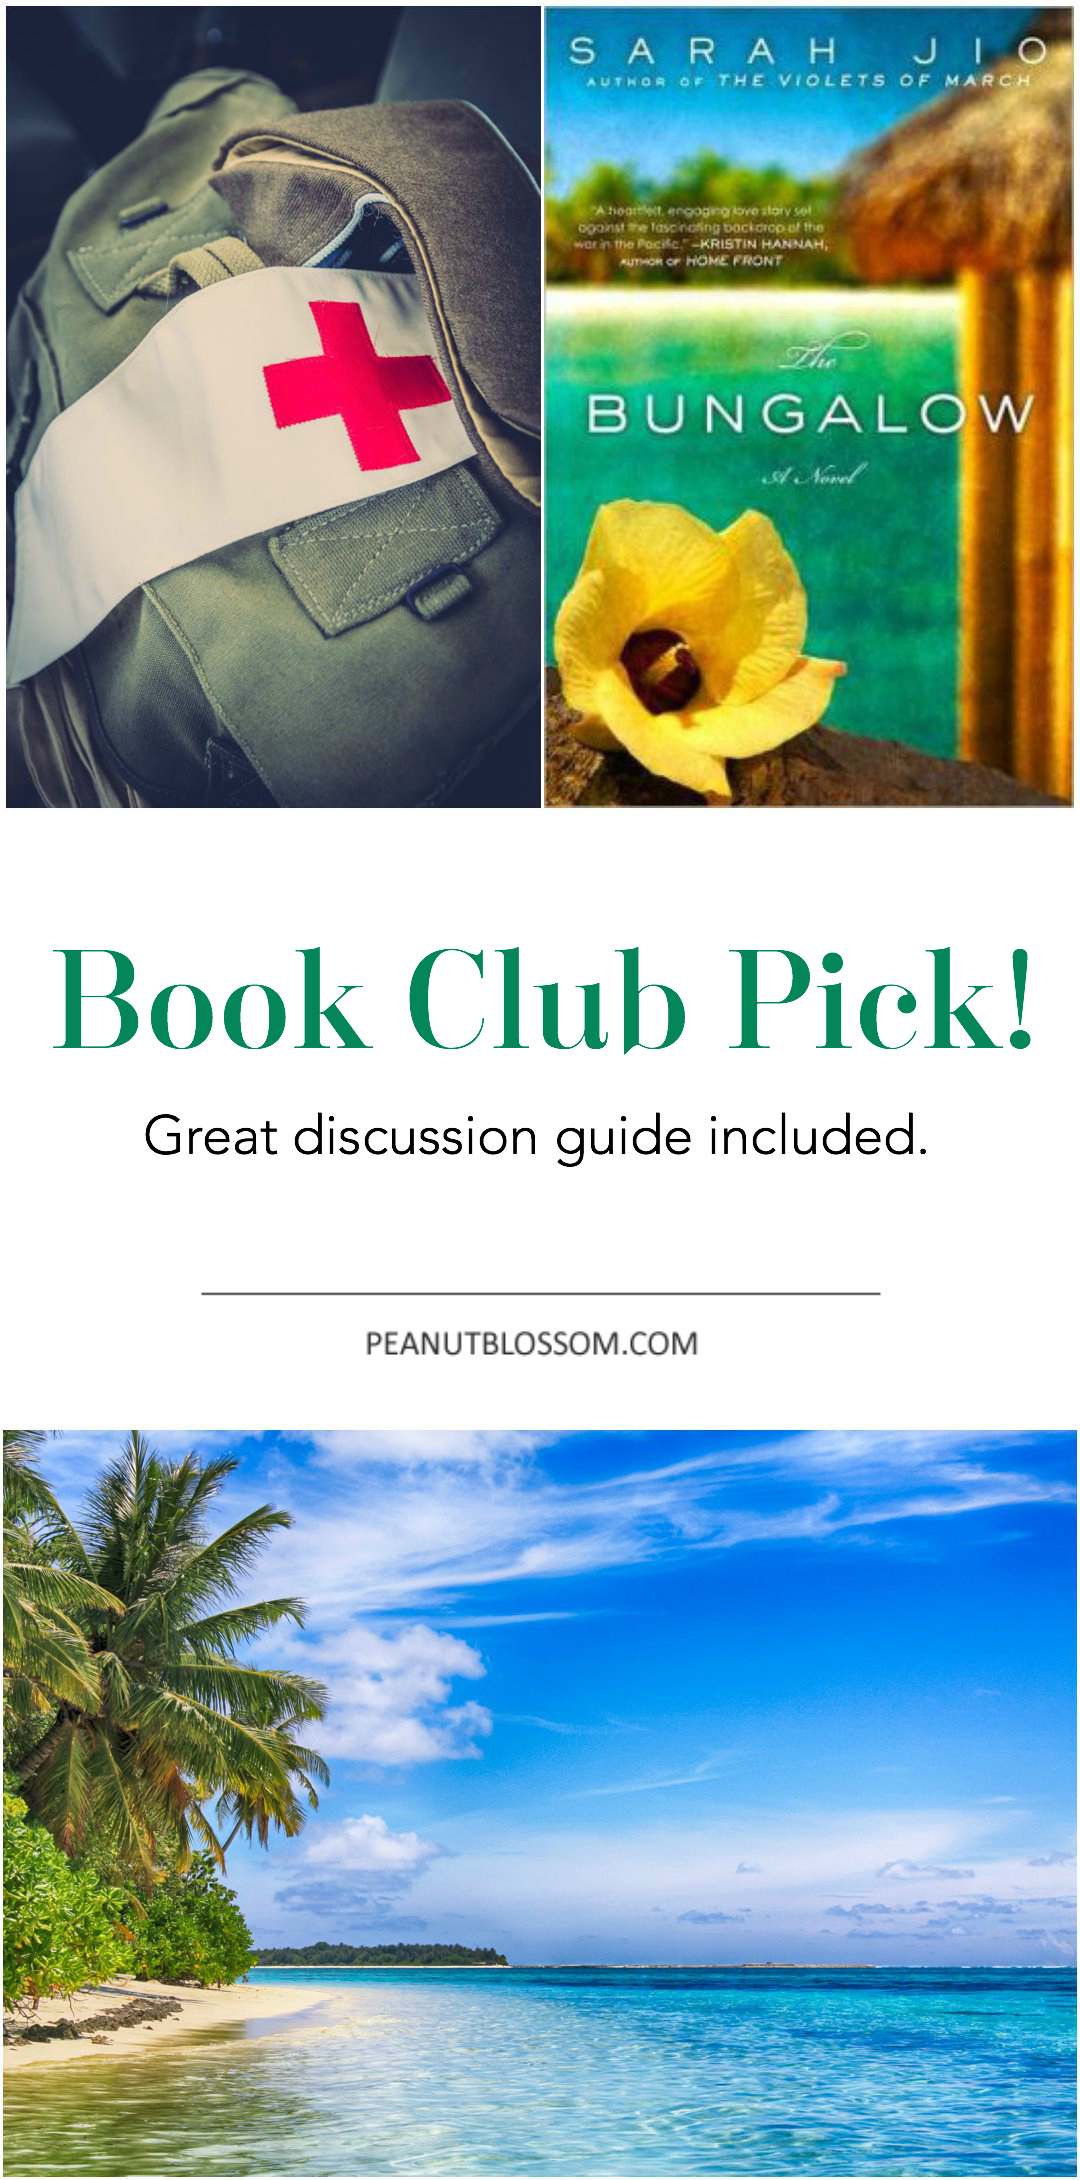 The Bungalow by Sarah Jio: The perfect pick for your next book club meeting. Check out the great discussion questions included.